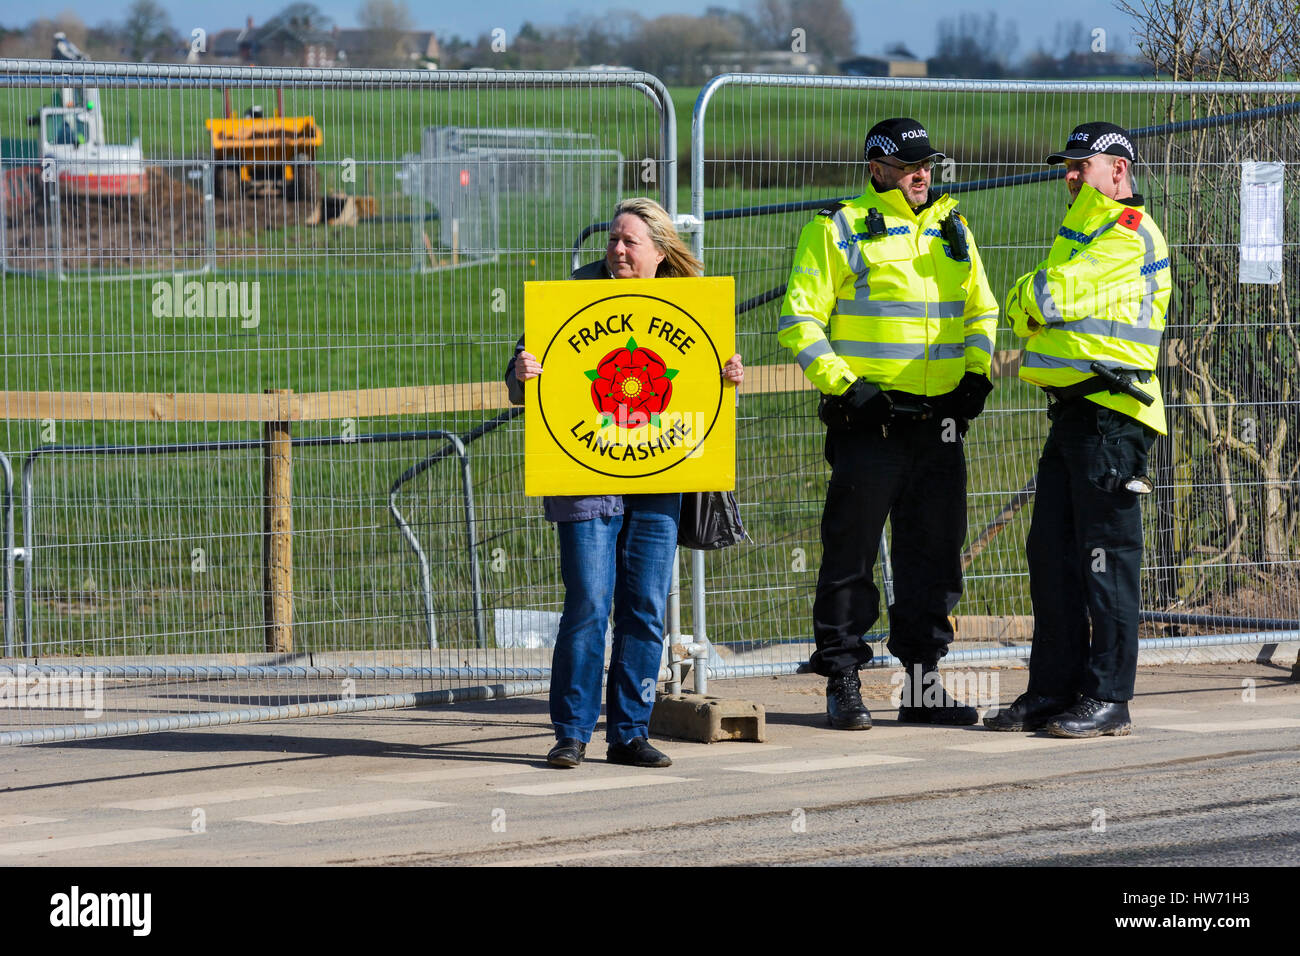 Anti-fracking protester. - Stock Image